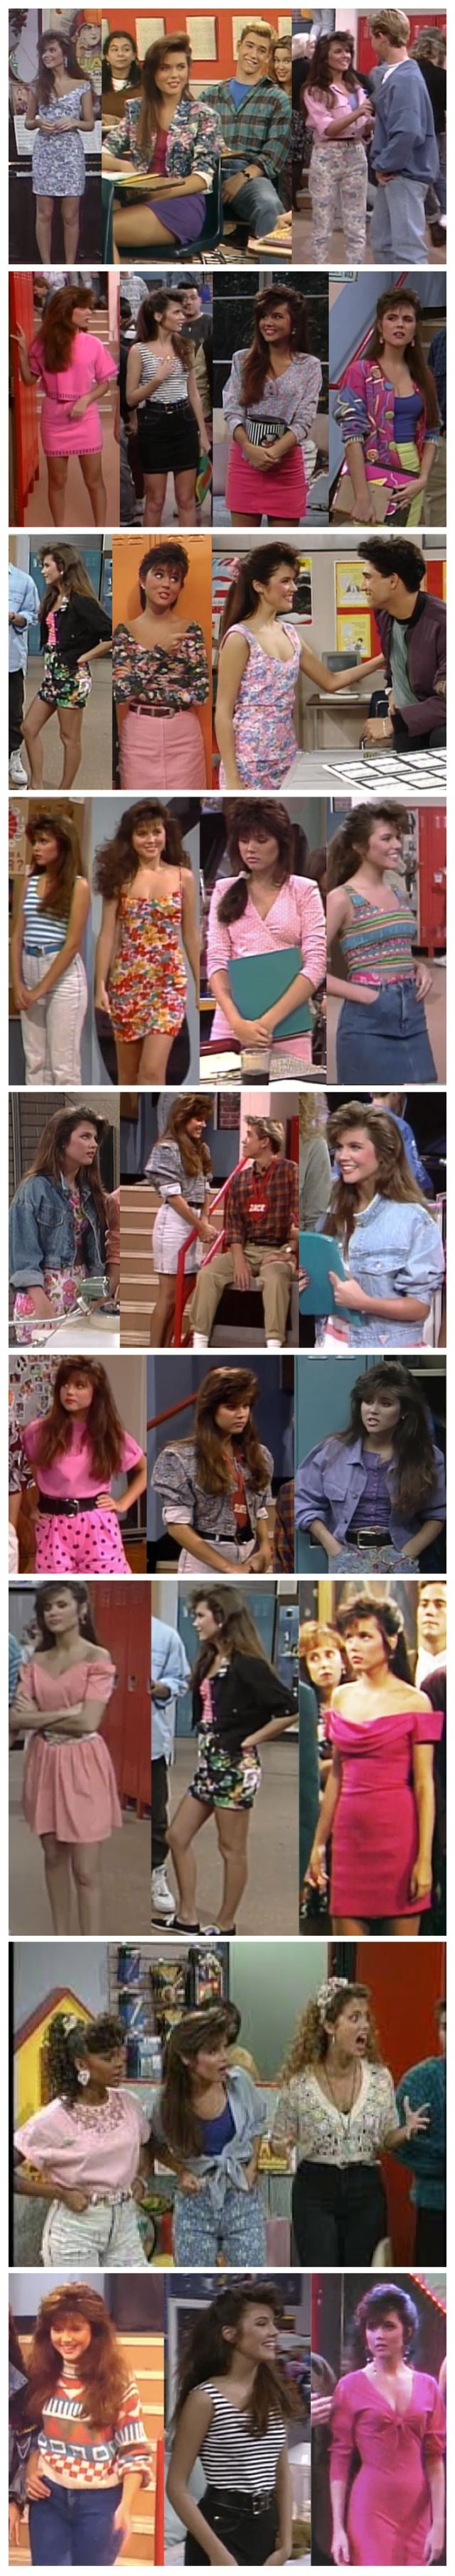 I want Kelly Kapowski's clothes from Saved by the Bell!